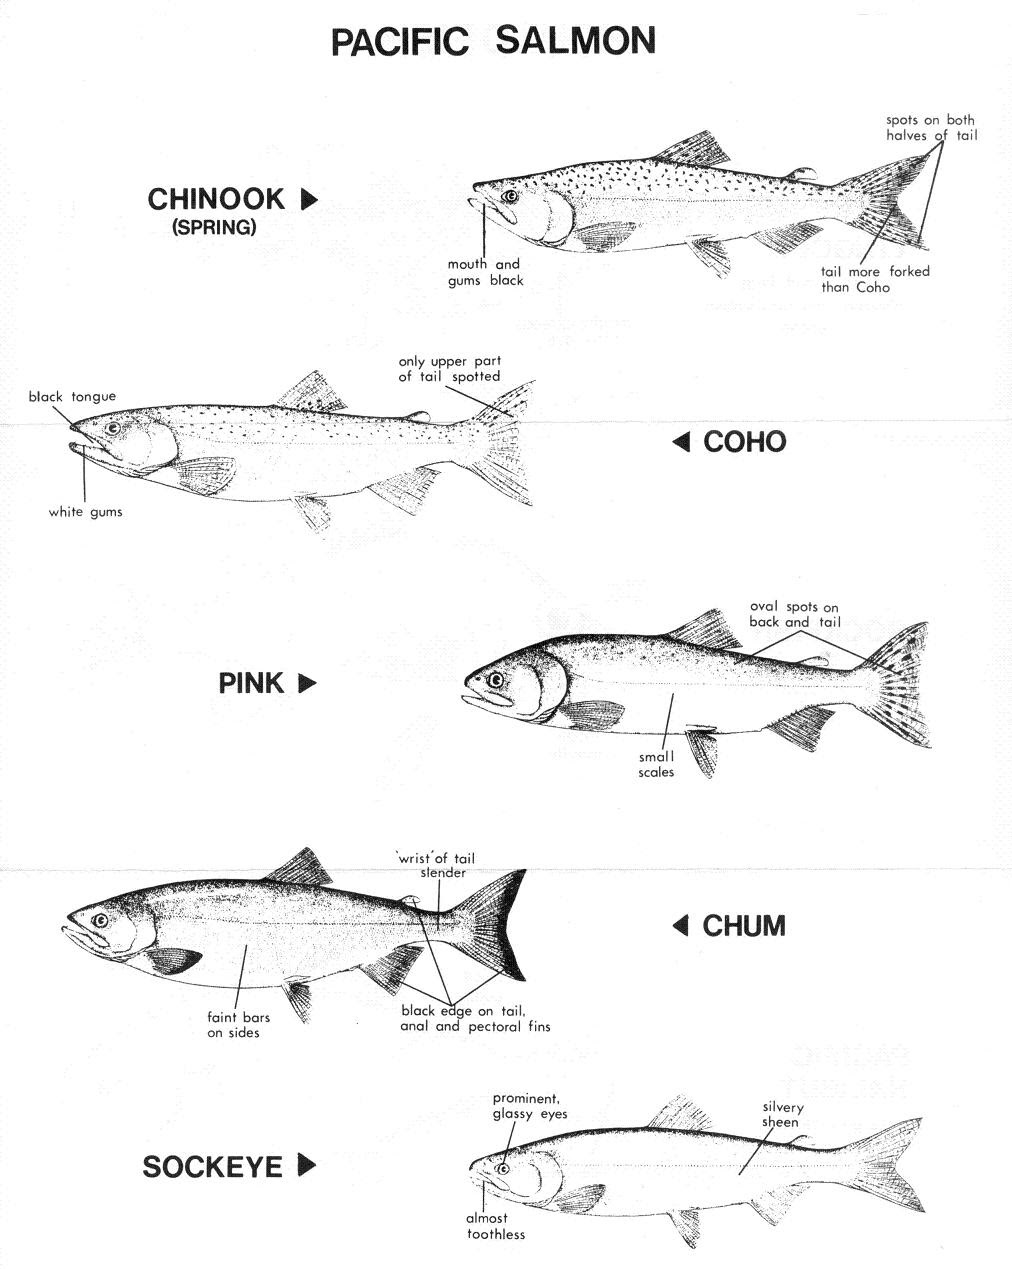 Fanny Bay Salmonid Enhancement Society - Some of Our Fish